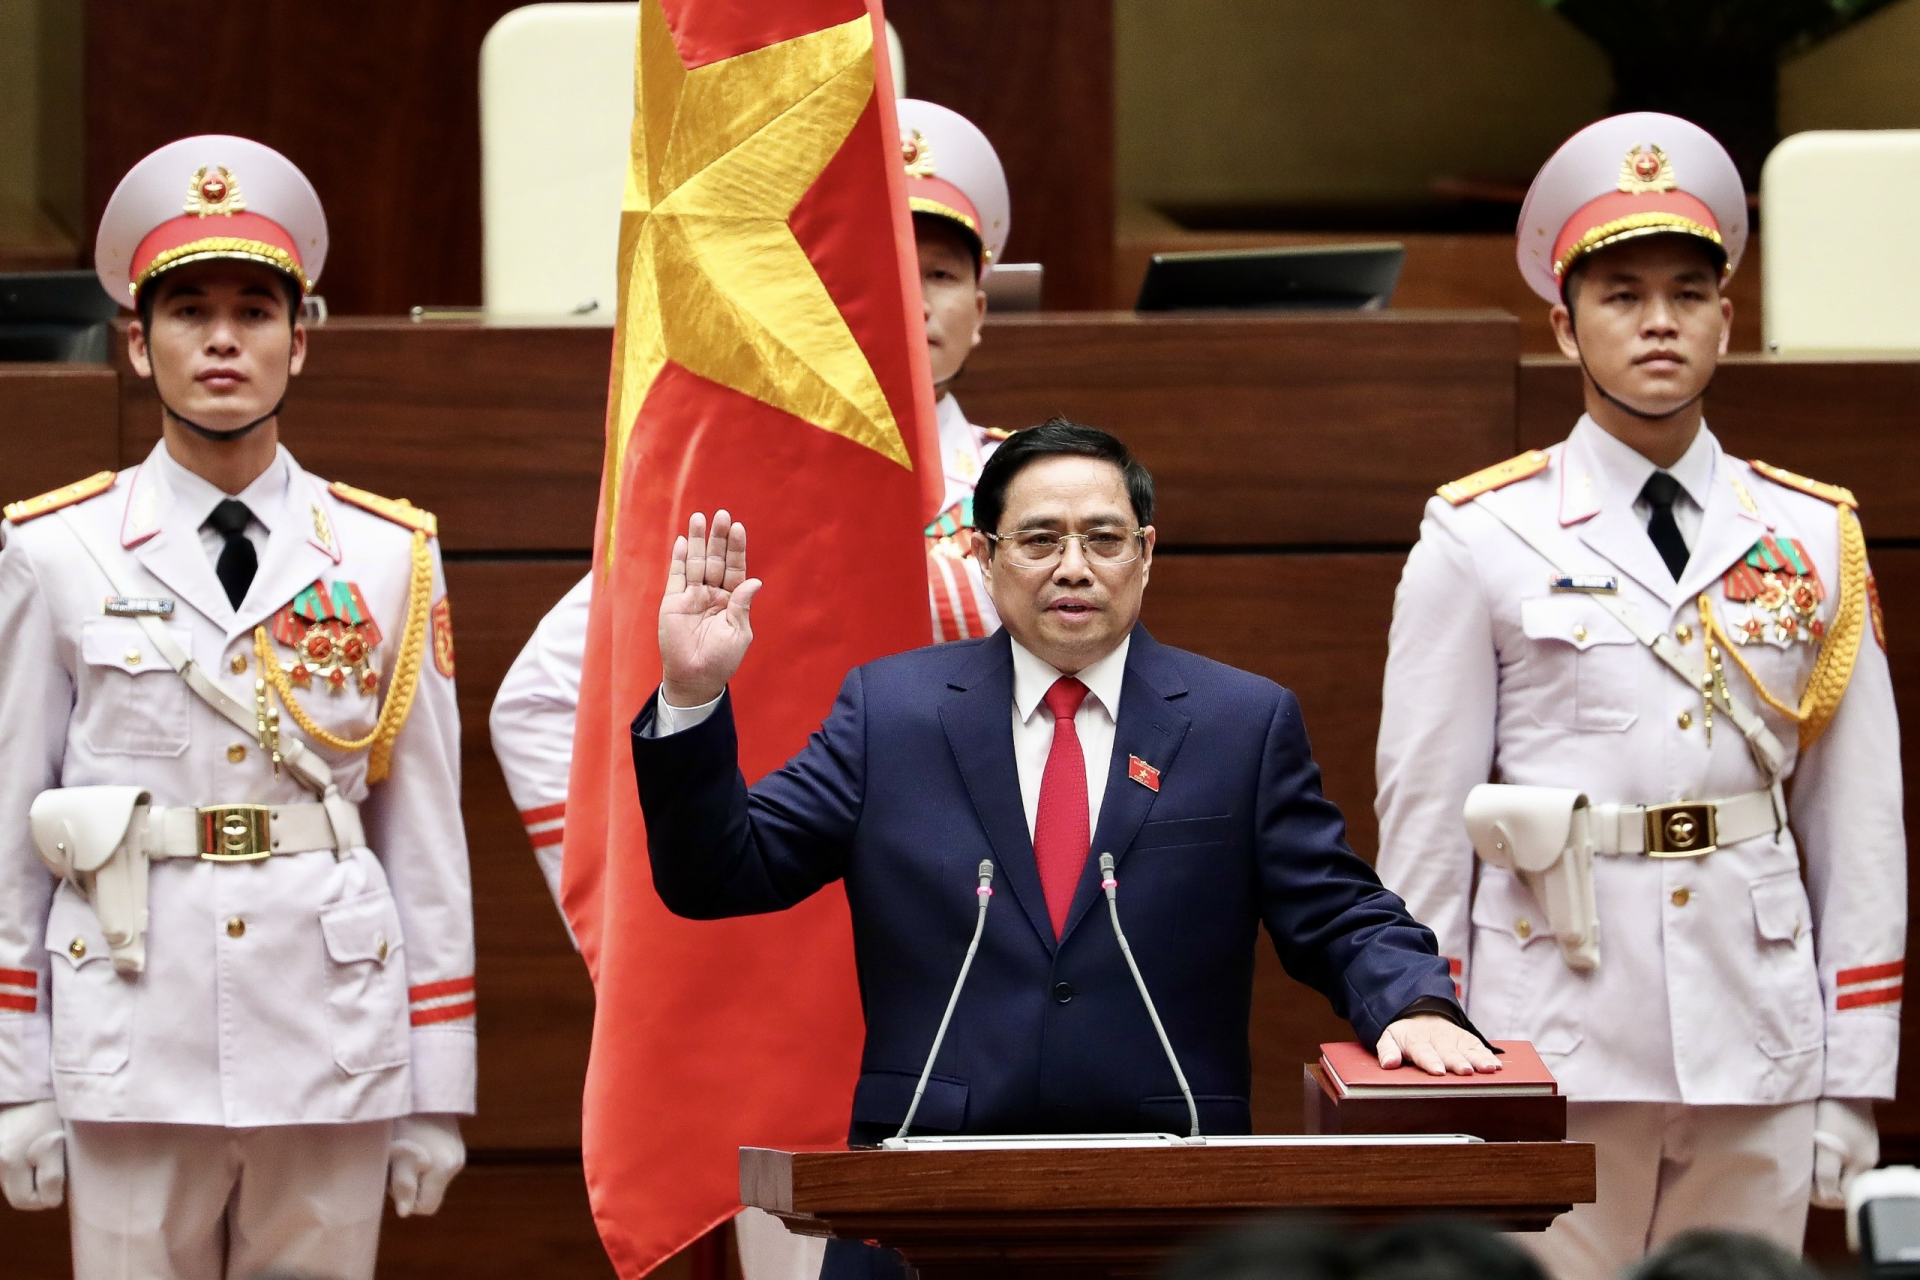 Pham Minh Chinh is sworn in as Prime Minister of the Socialist Republic of Viet Nam at the Headquarters of the National Assembly, Ha Noi, July 26, 2021. Photo: VGP